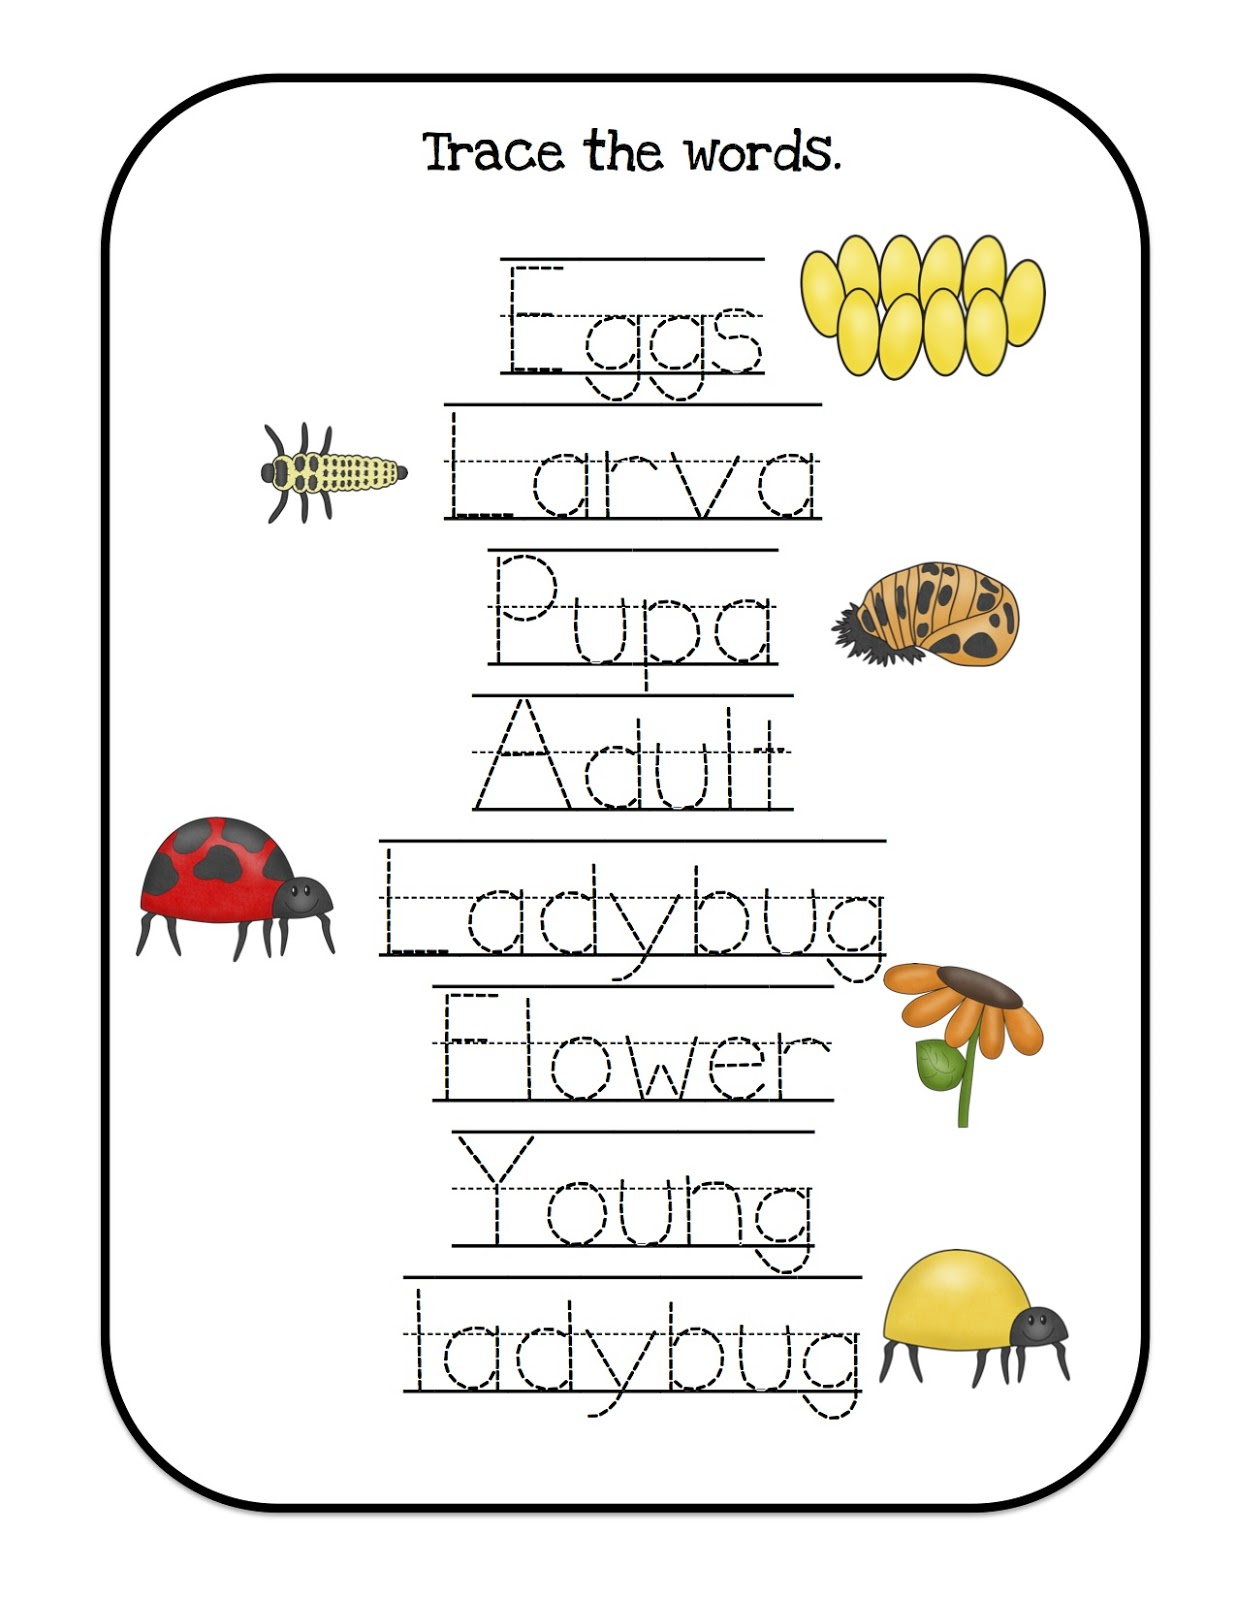 Ladybug Lifecycle Printable Preschool Printables